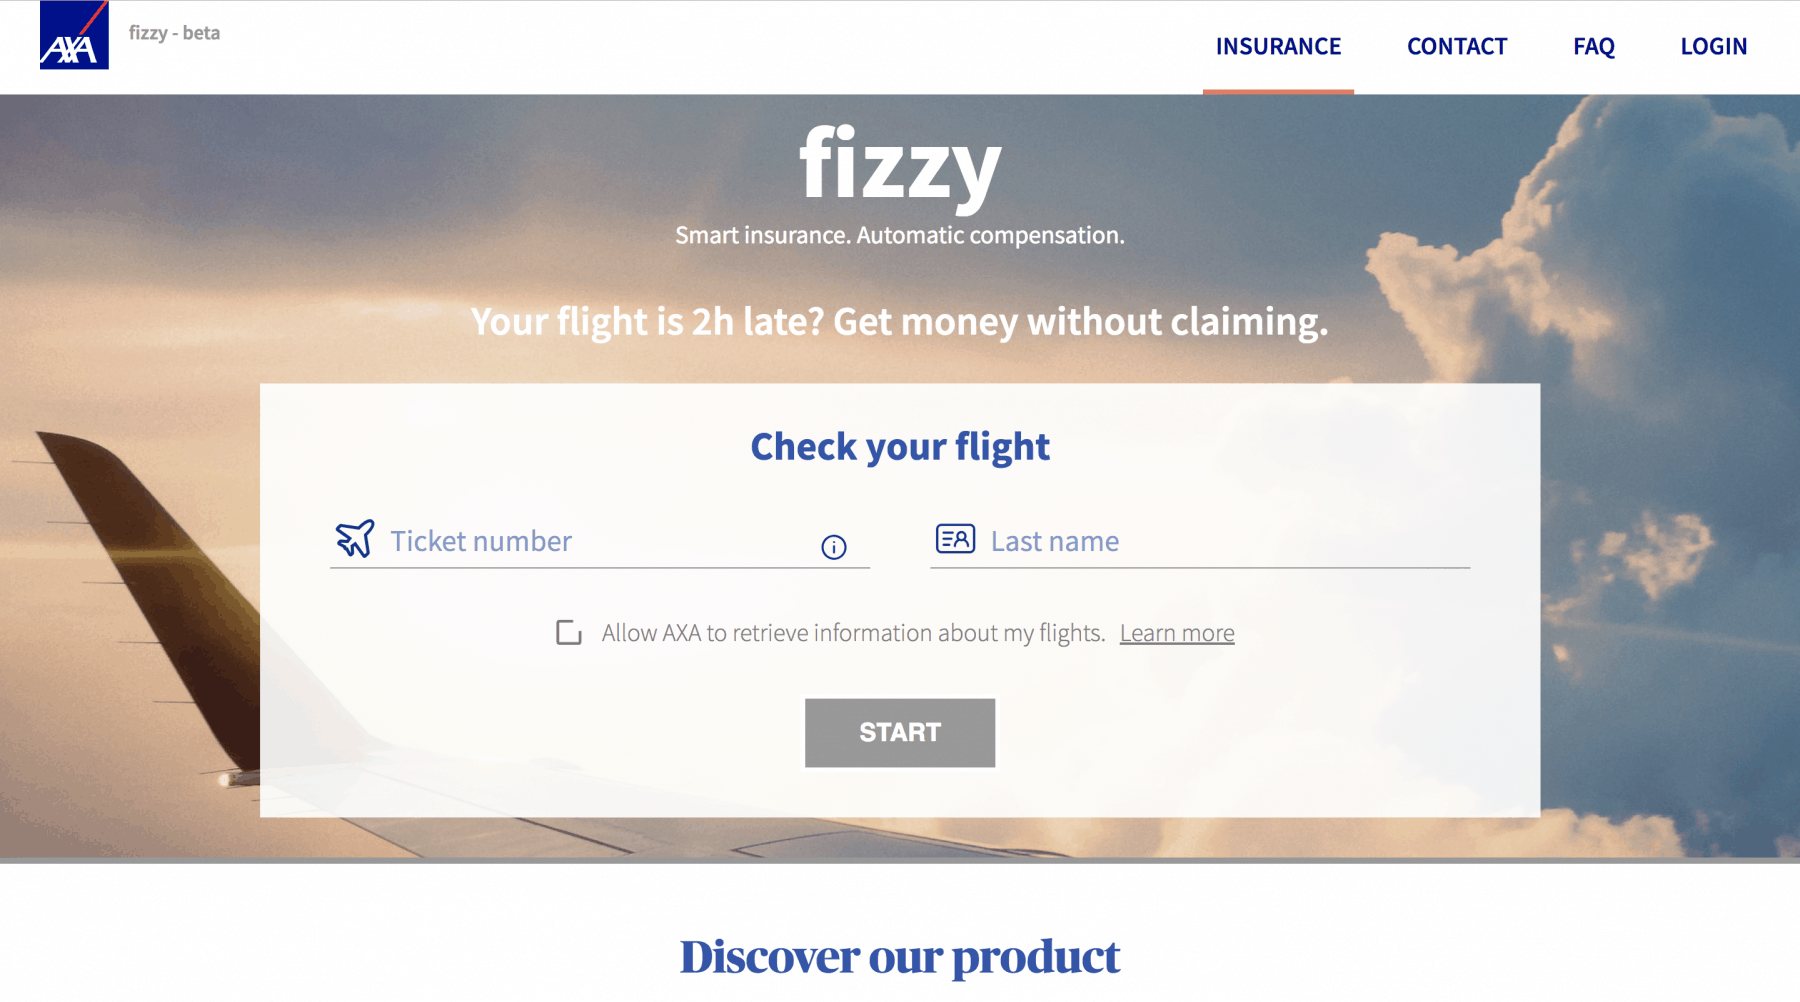 FIzzy blockchain smart contract use case implementation example